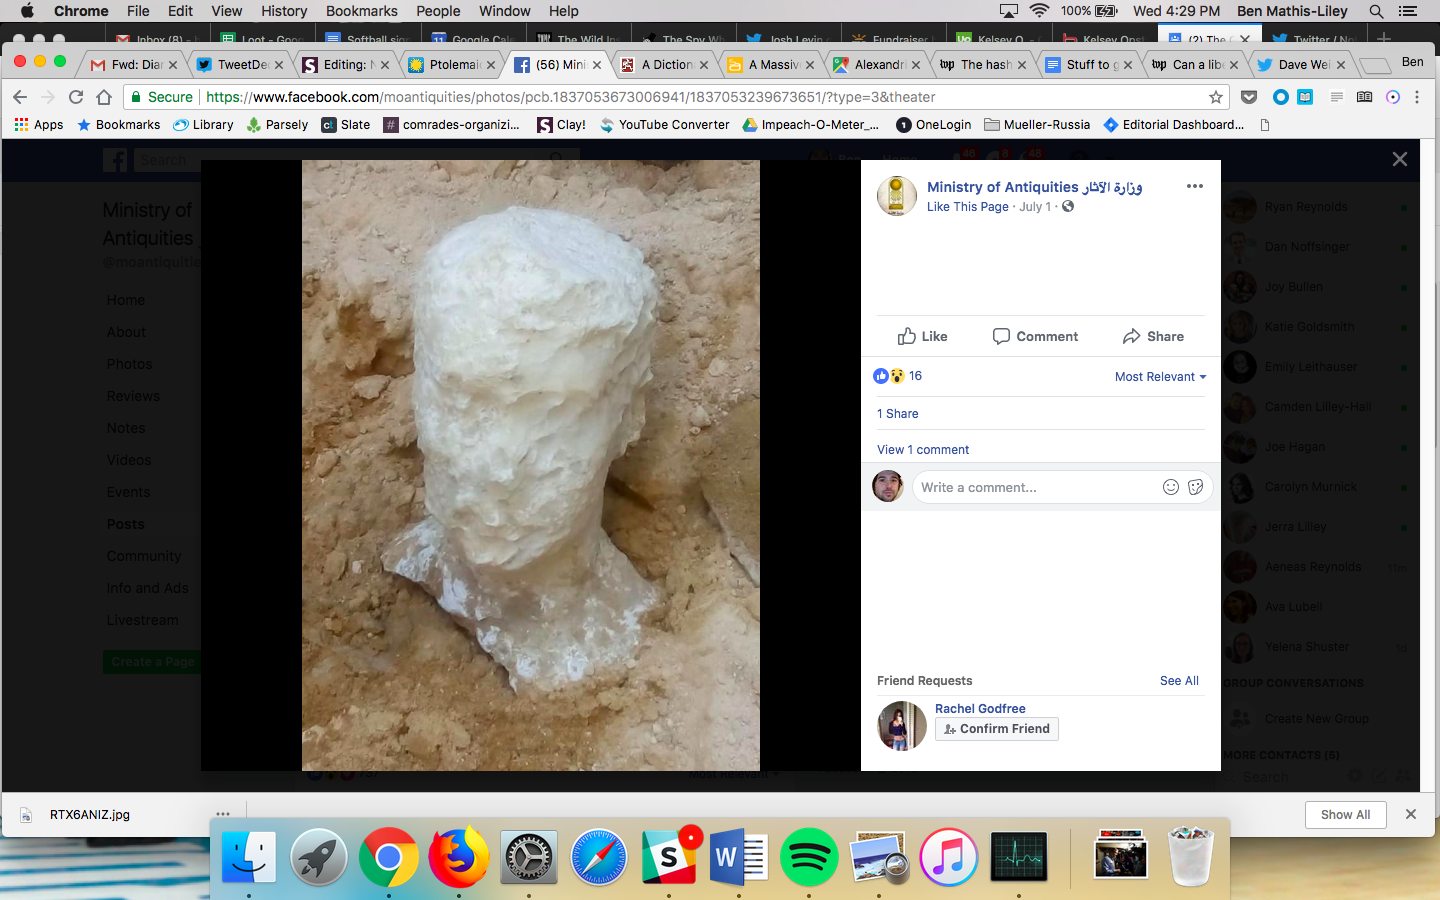 A white alabaster head against rock.